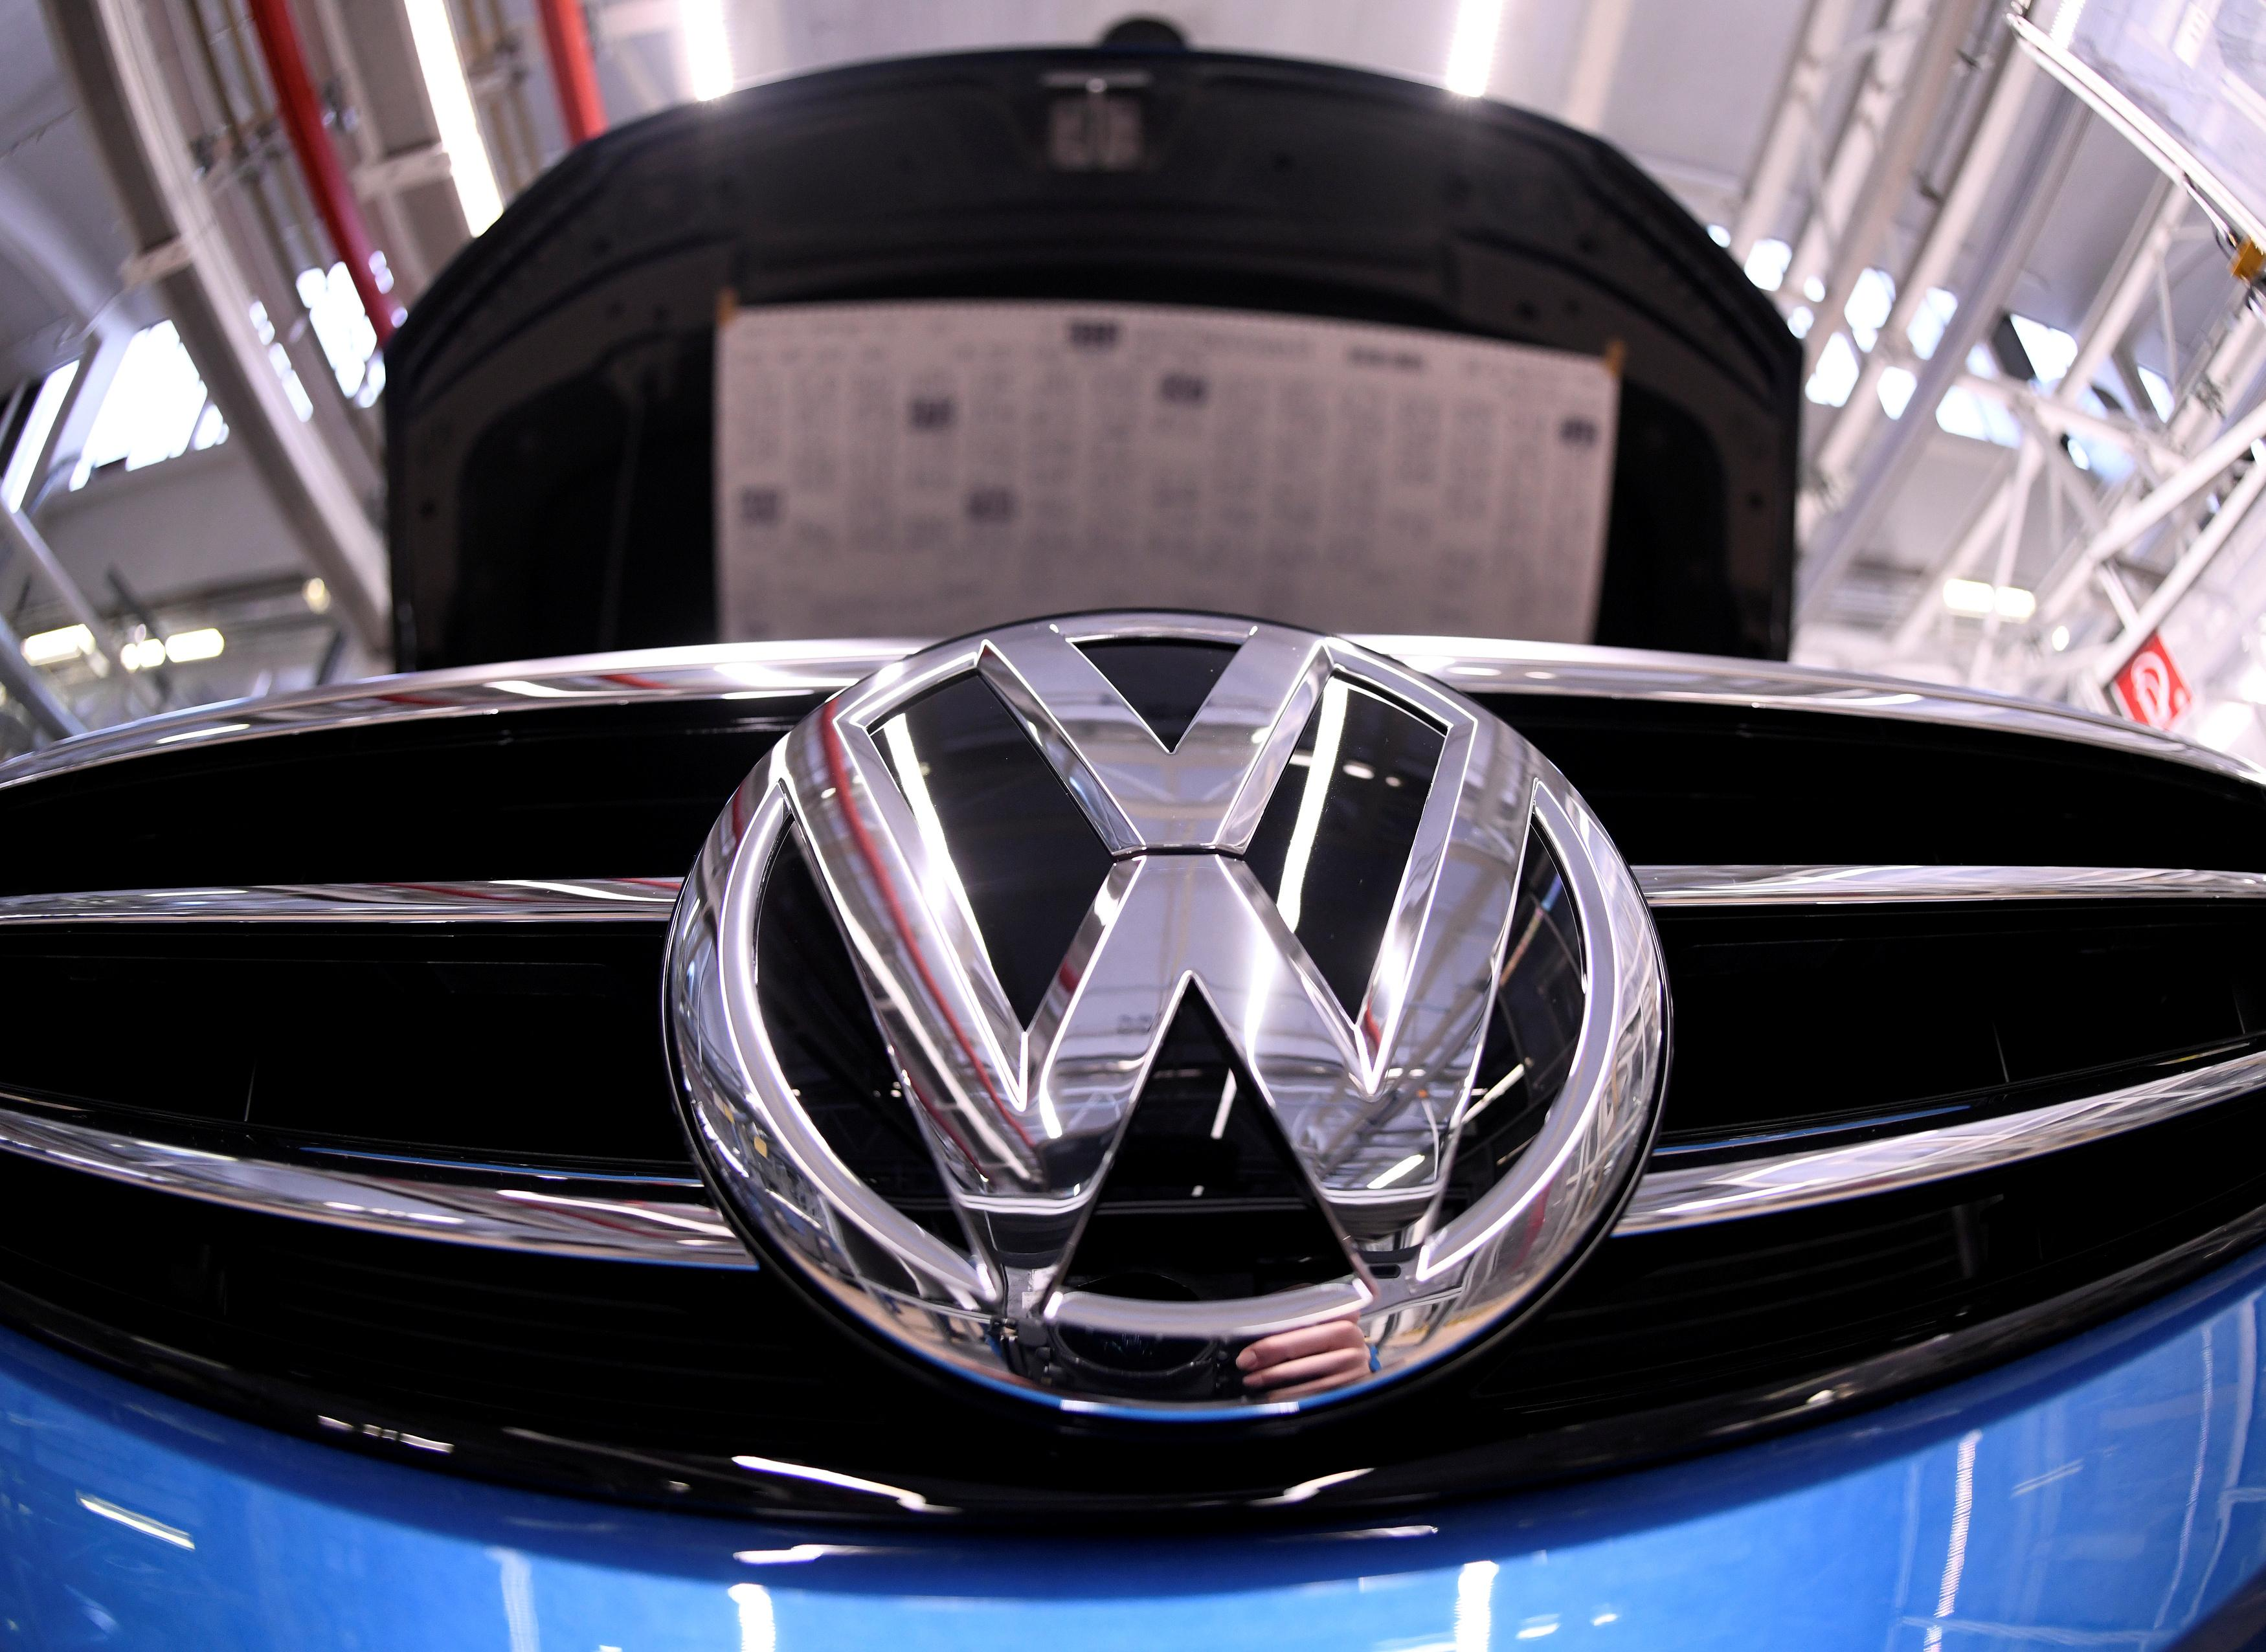 Czech owners of Skoda, Volkswagen cars qualify for $23 million compensation, court says